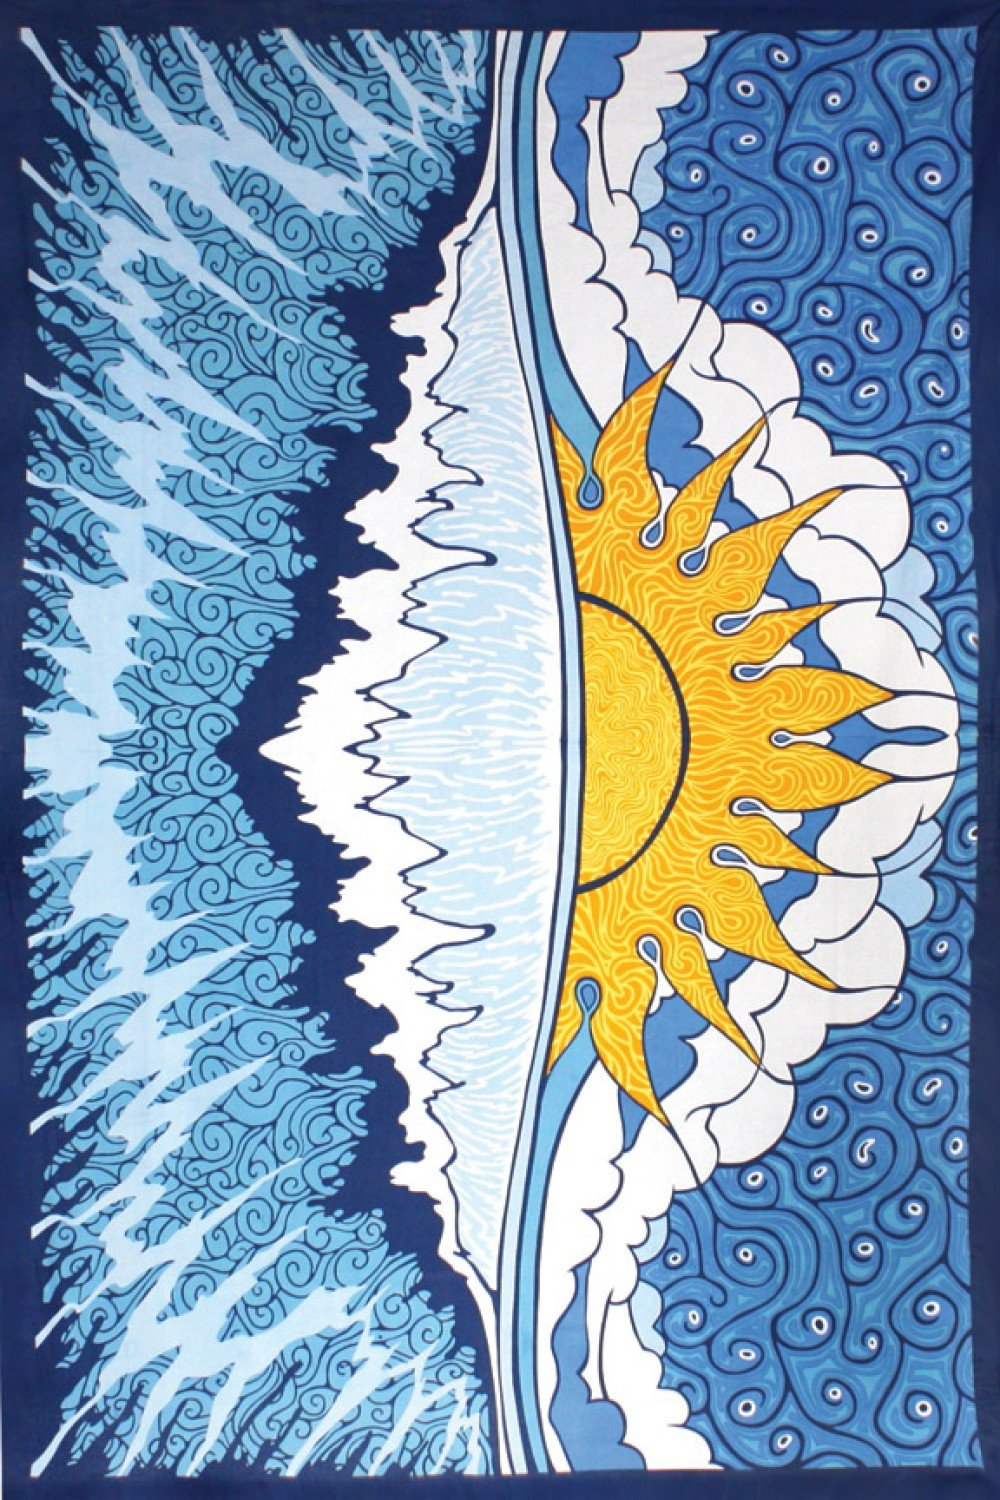 Sun Wave Tapestry 60x90 - Artwork by Chris Pinkerton